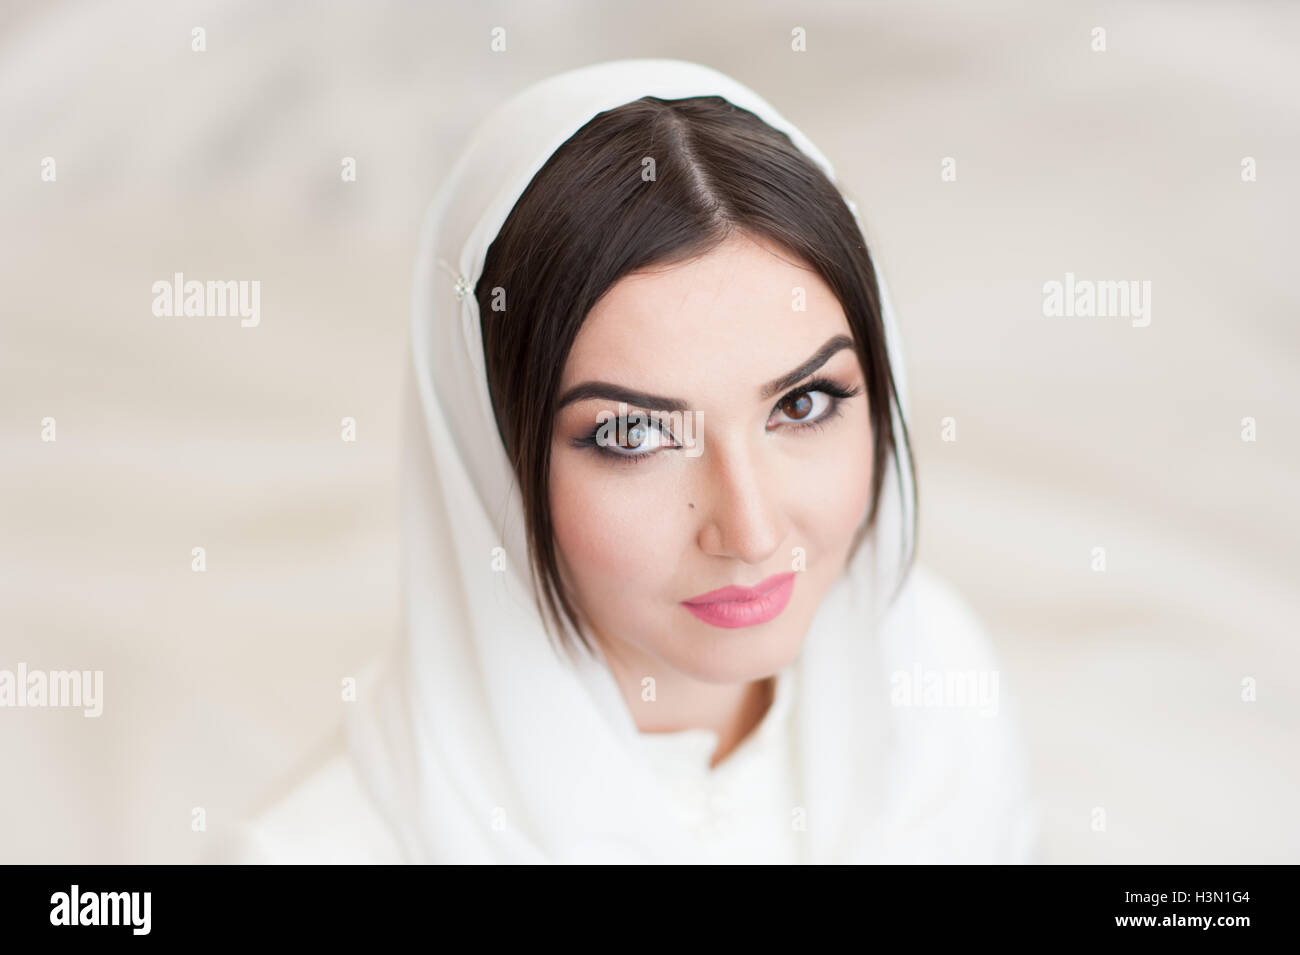 portrait of beautiful girl in white headscarf - Stock Image